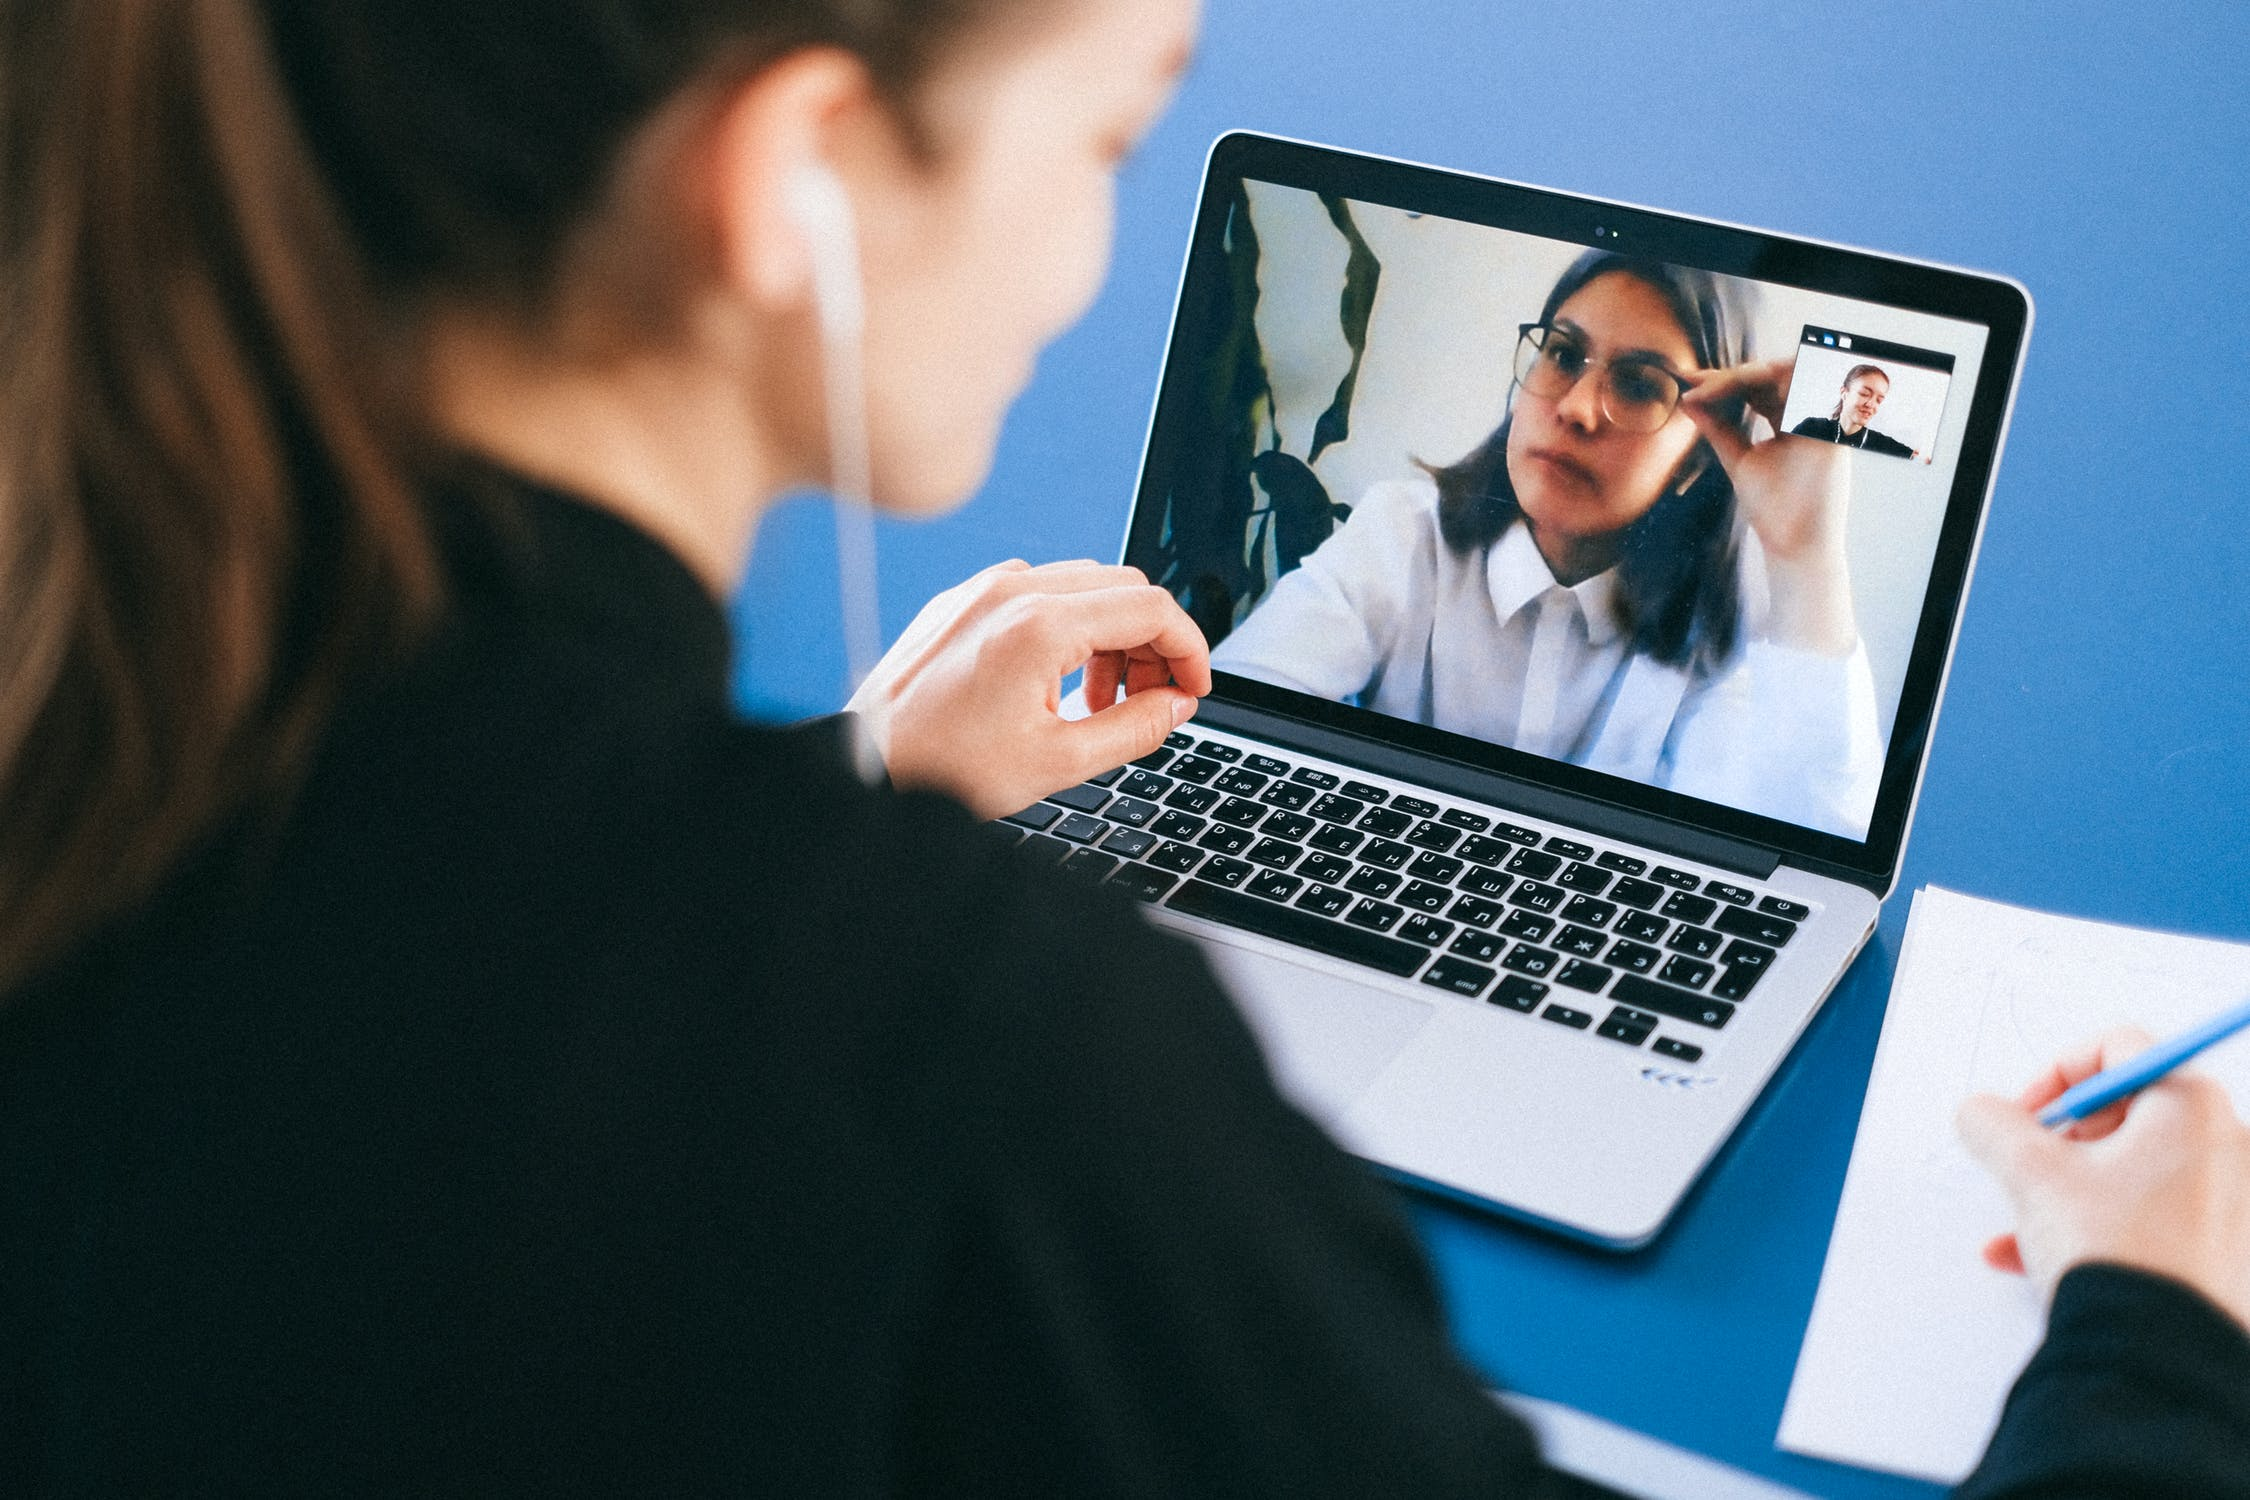 Two women on a video call